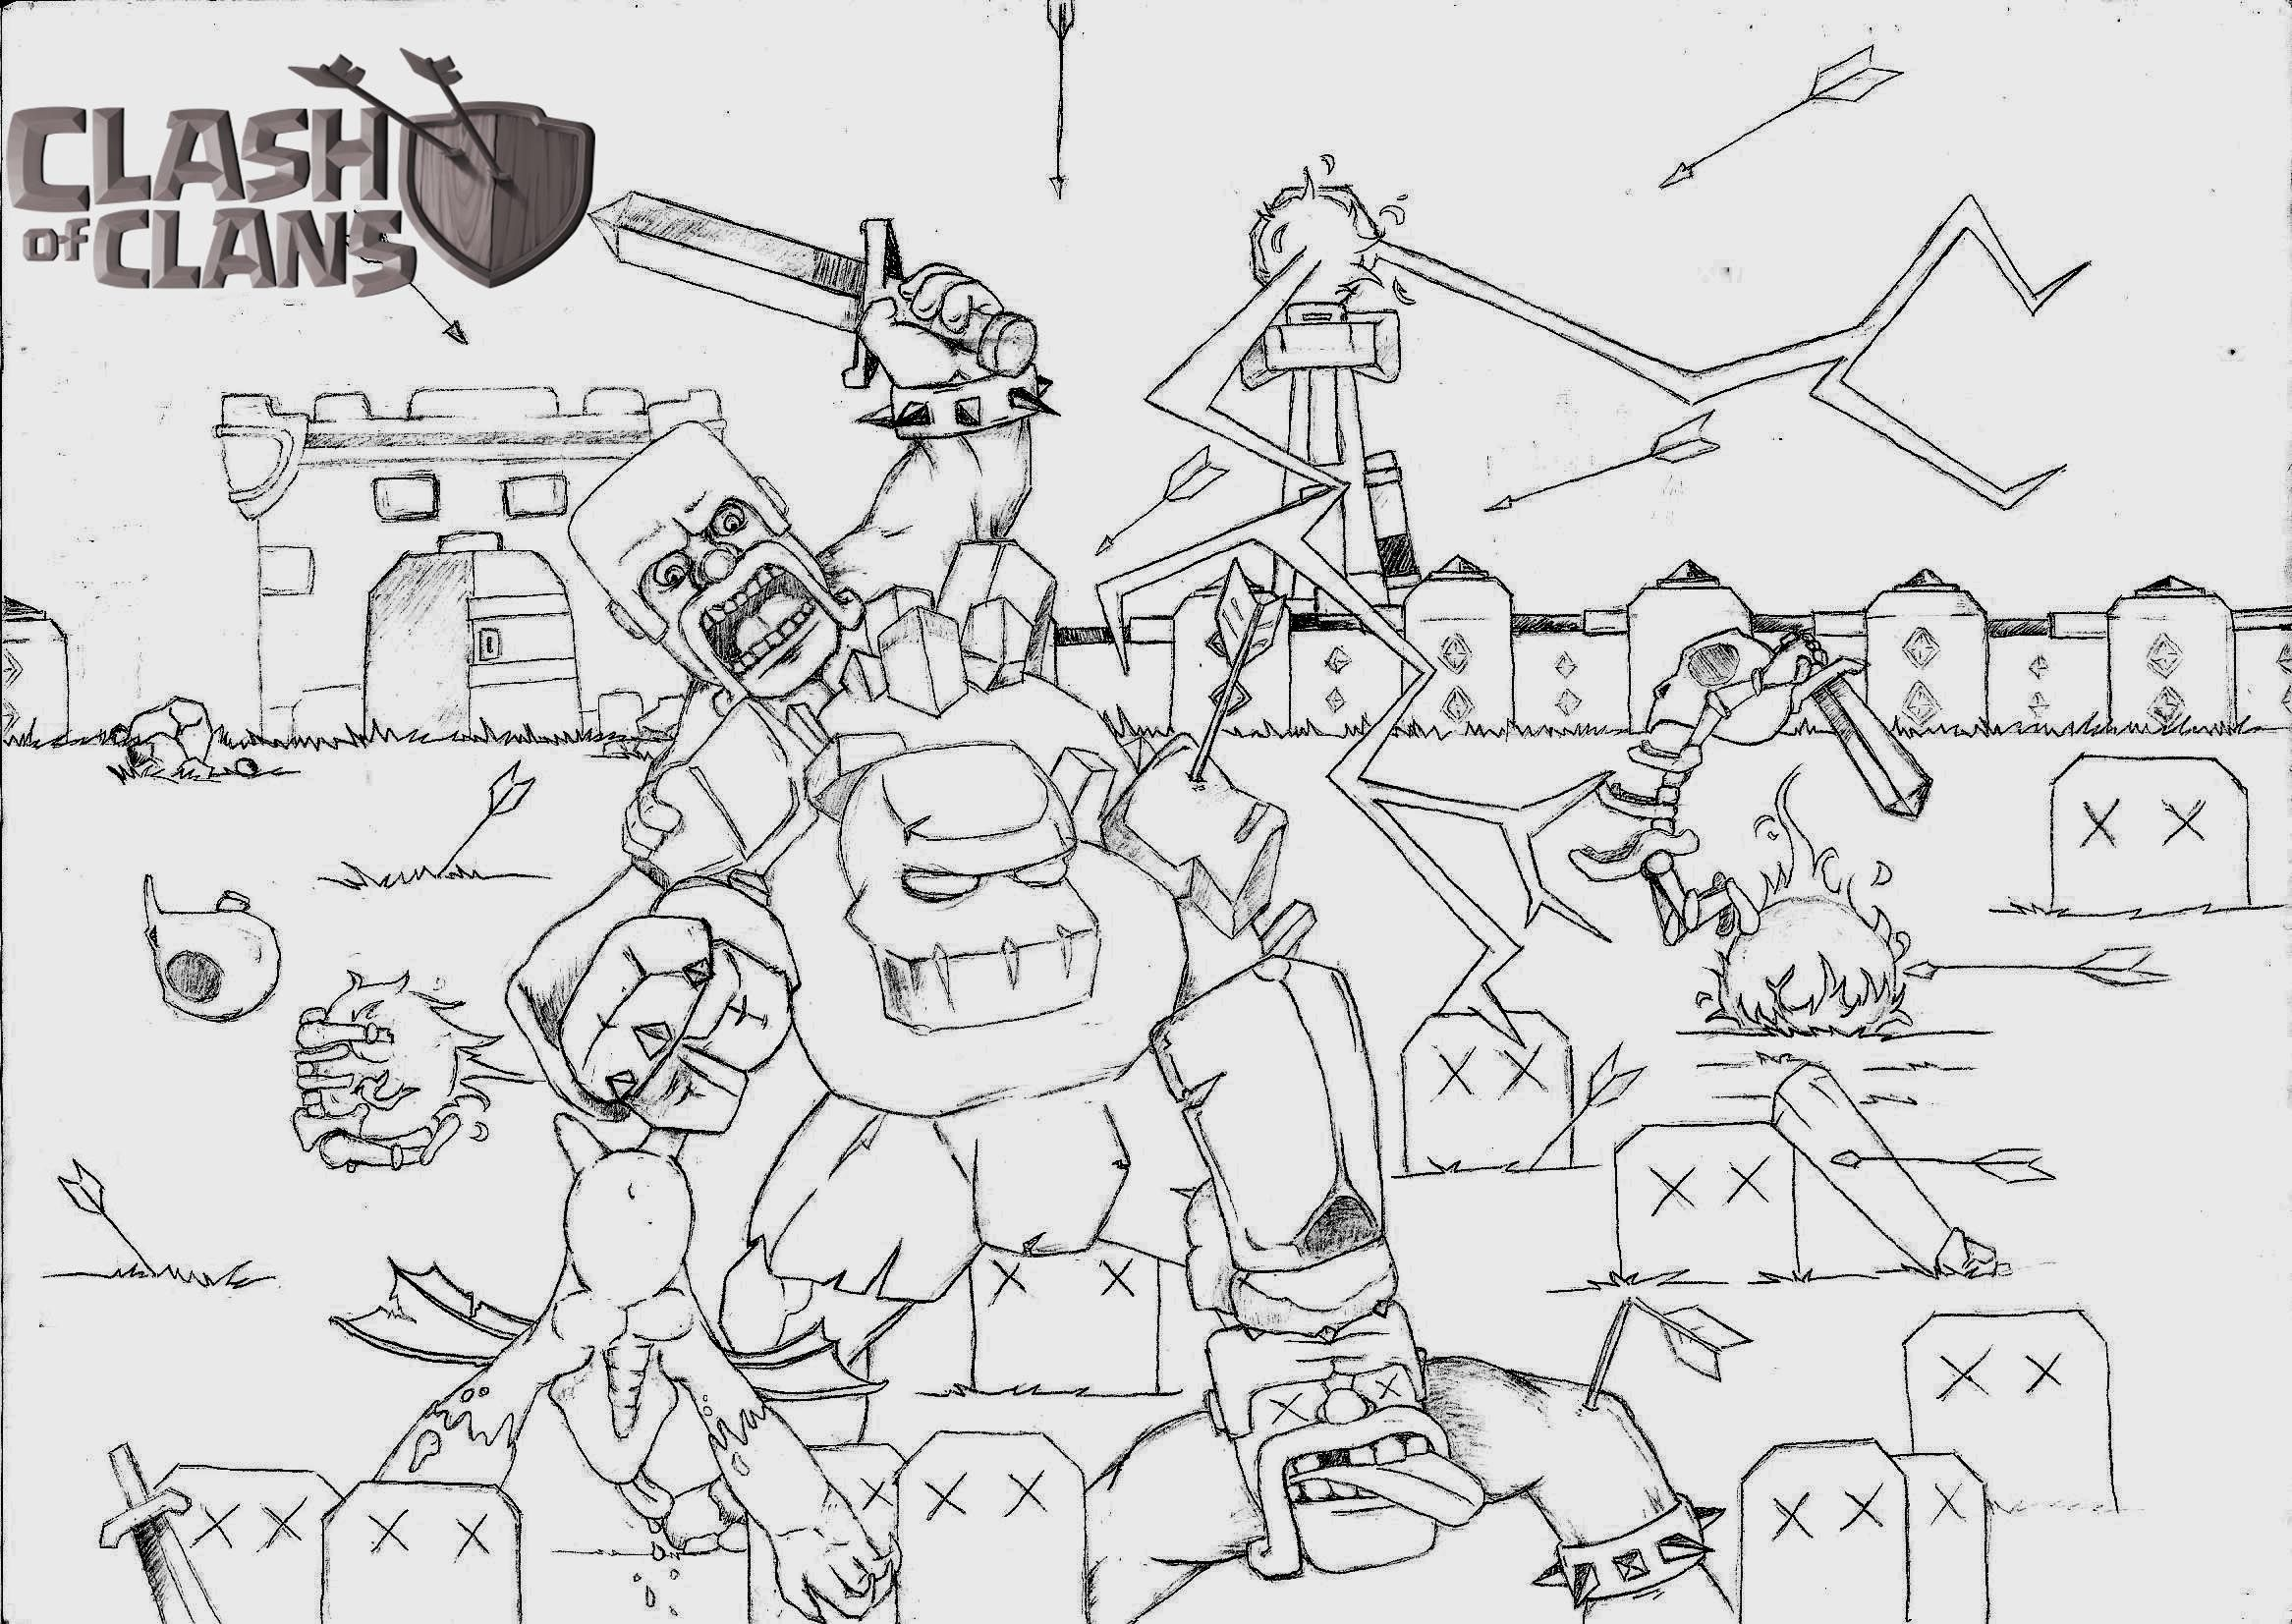 Clash of Clans Coloring Pages  Coloring pages, Clash of clans